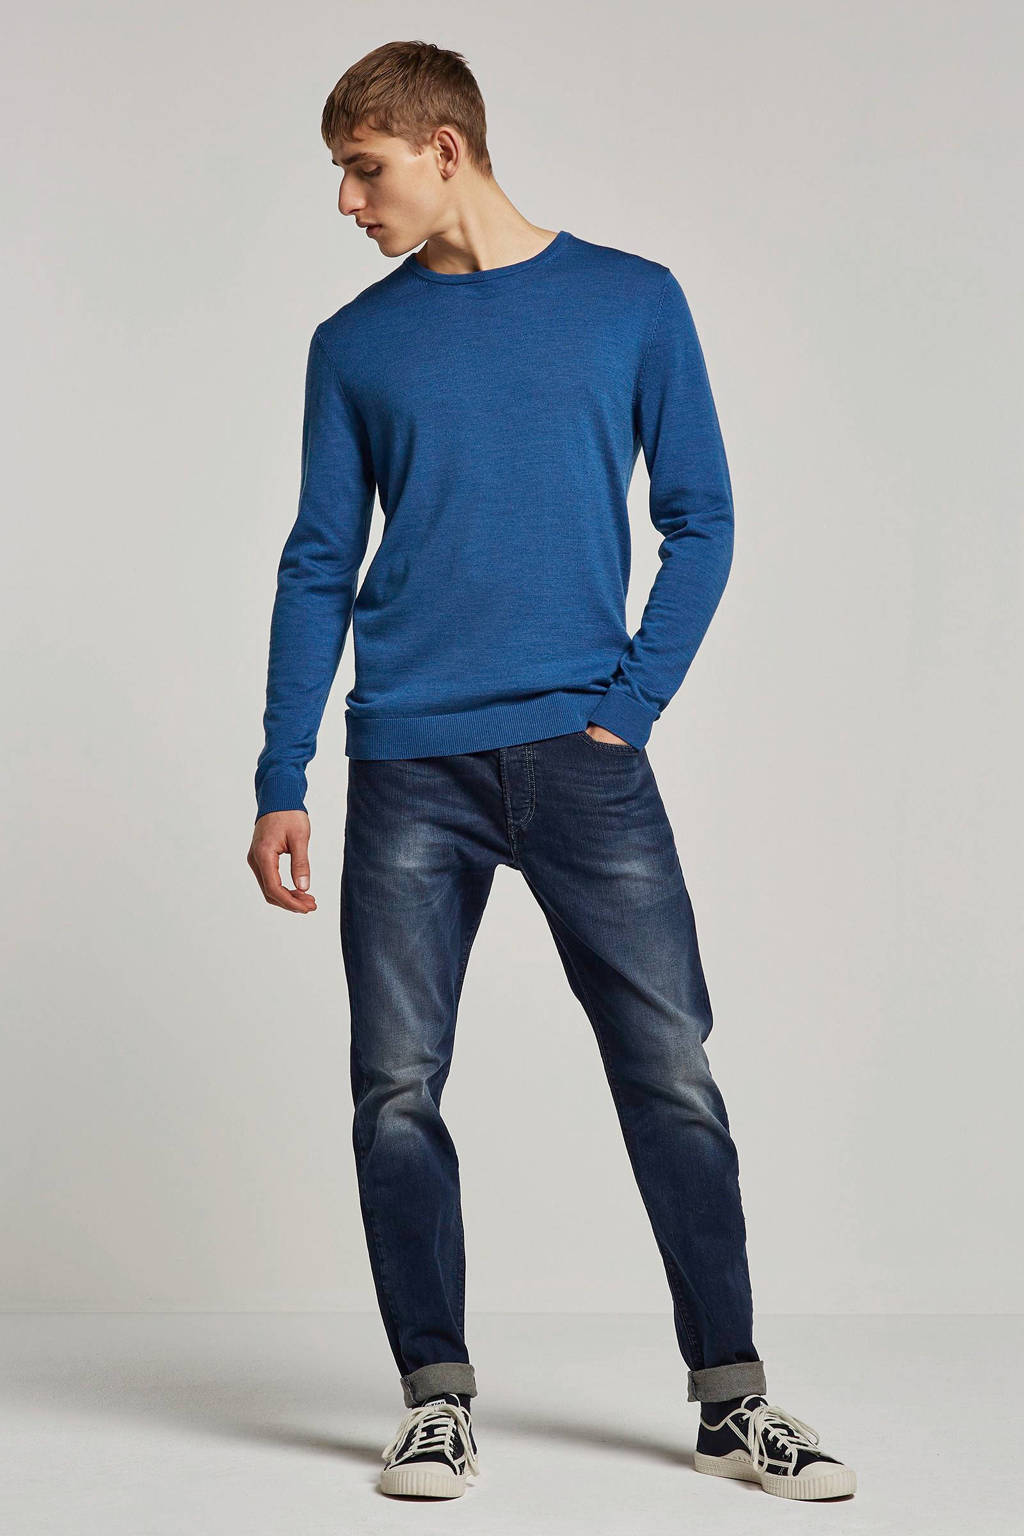 SELECTED HOMME trui, Blauw